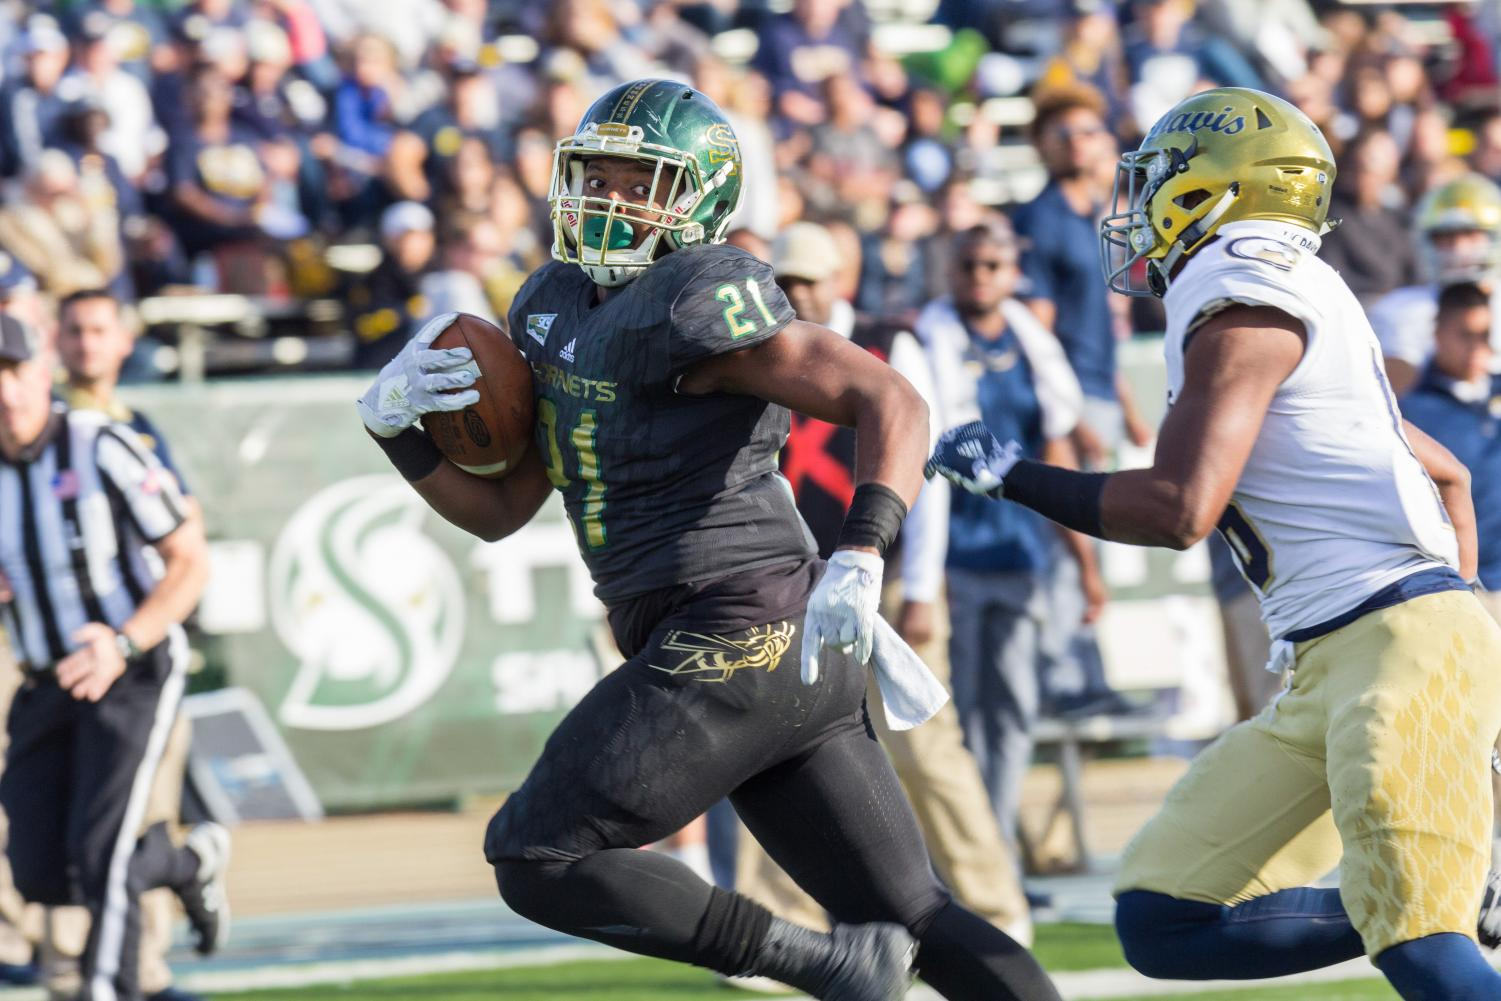 Sacramento State freshman running back BJ Perkinson sprints away from a UC Davis defender in the 64th annual Causeway Classic at Hornet Stadium on Saturday, Nov. 18, 2017. Sac State defeated the Aggies 52-47.